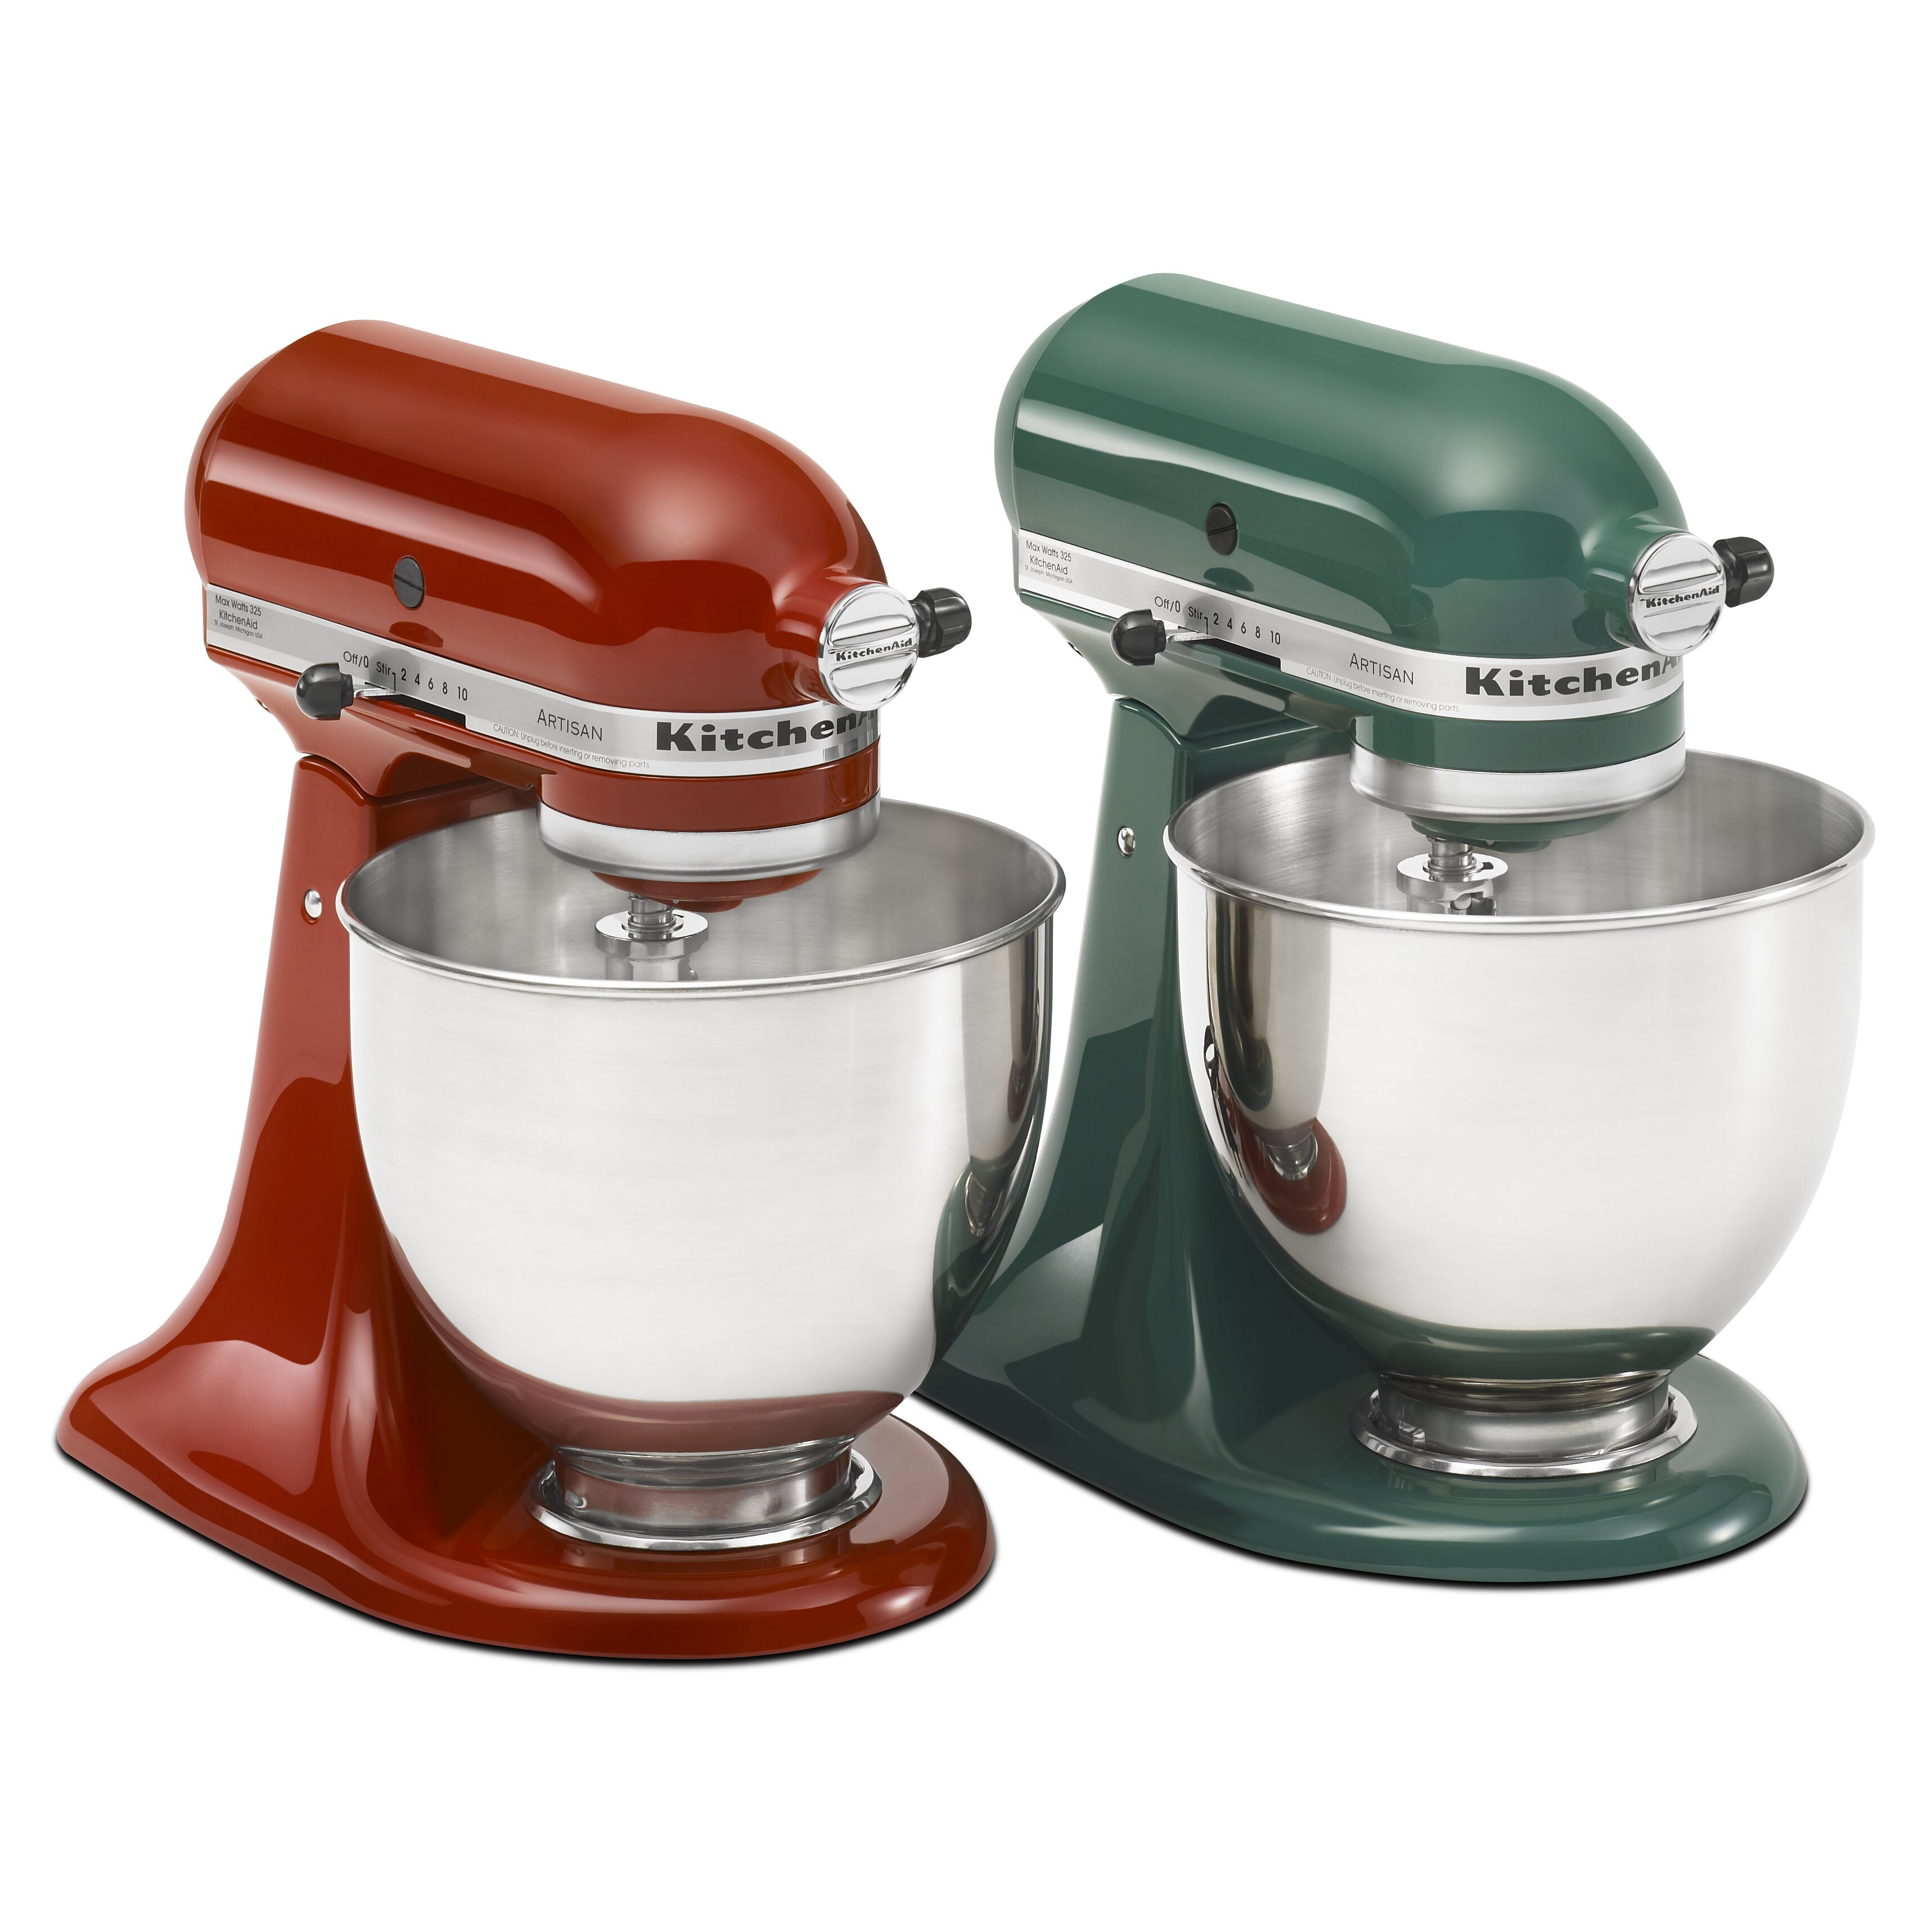 Kitchenaid artisan series 5 qt stand mixer with stainless steel glass bowls reviews wayfair - Kitchenaid artisan qt stand mixer attachments ...